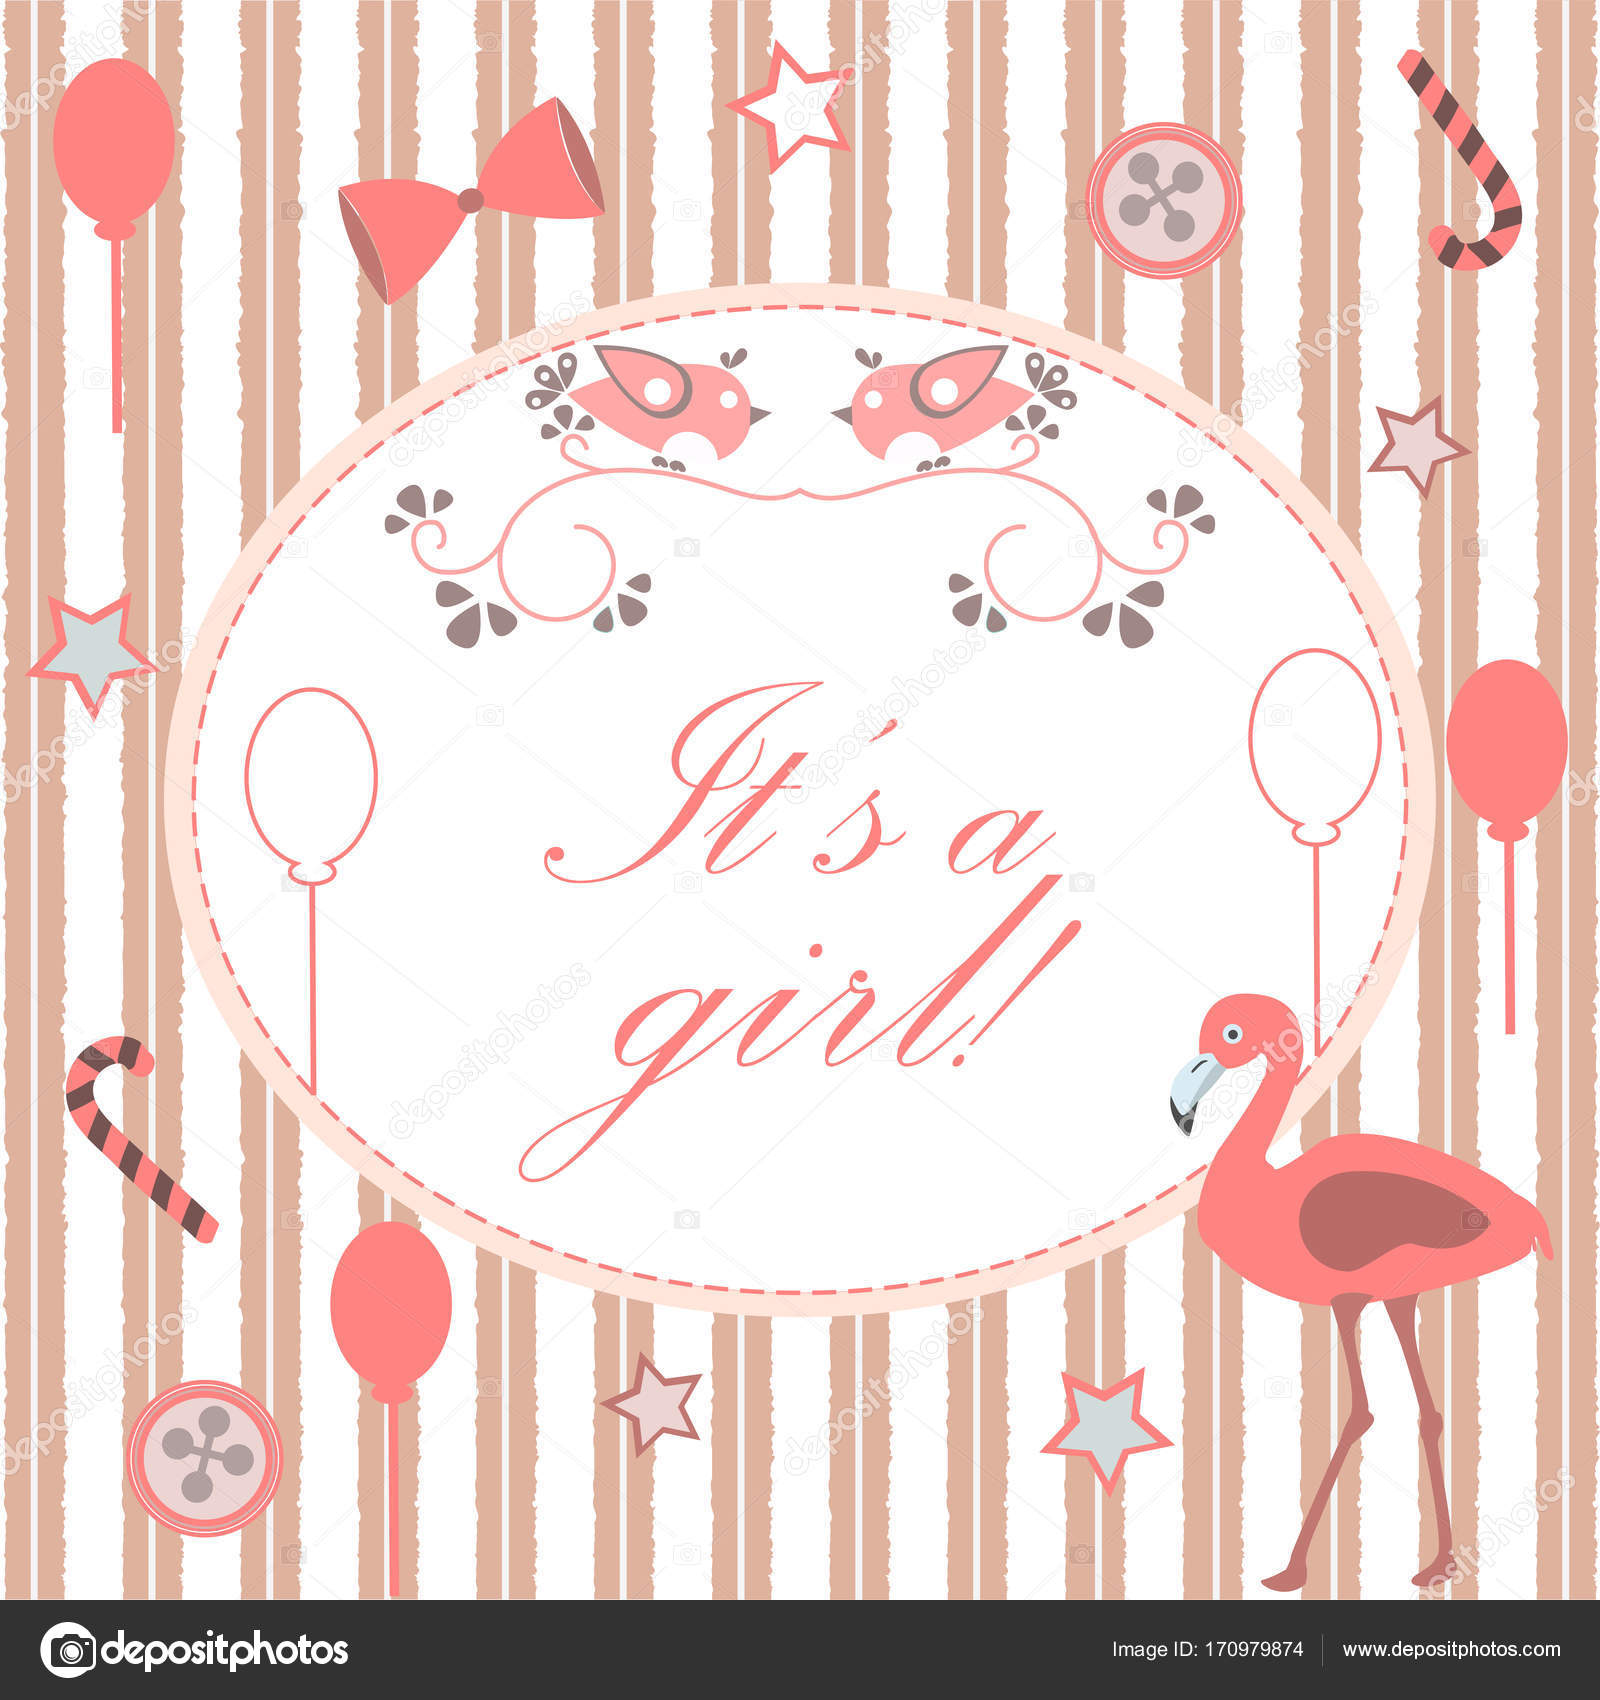 Baby Shower Invitation Card Design with flamingo — Stock Vector ...